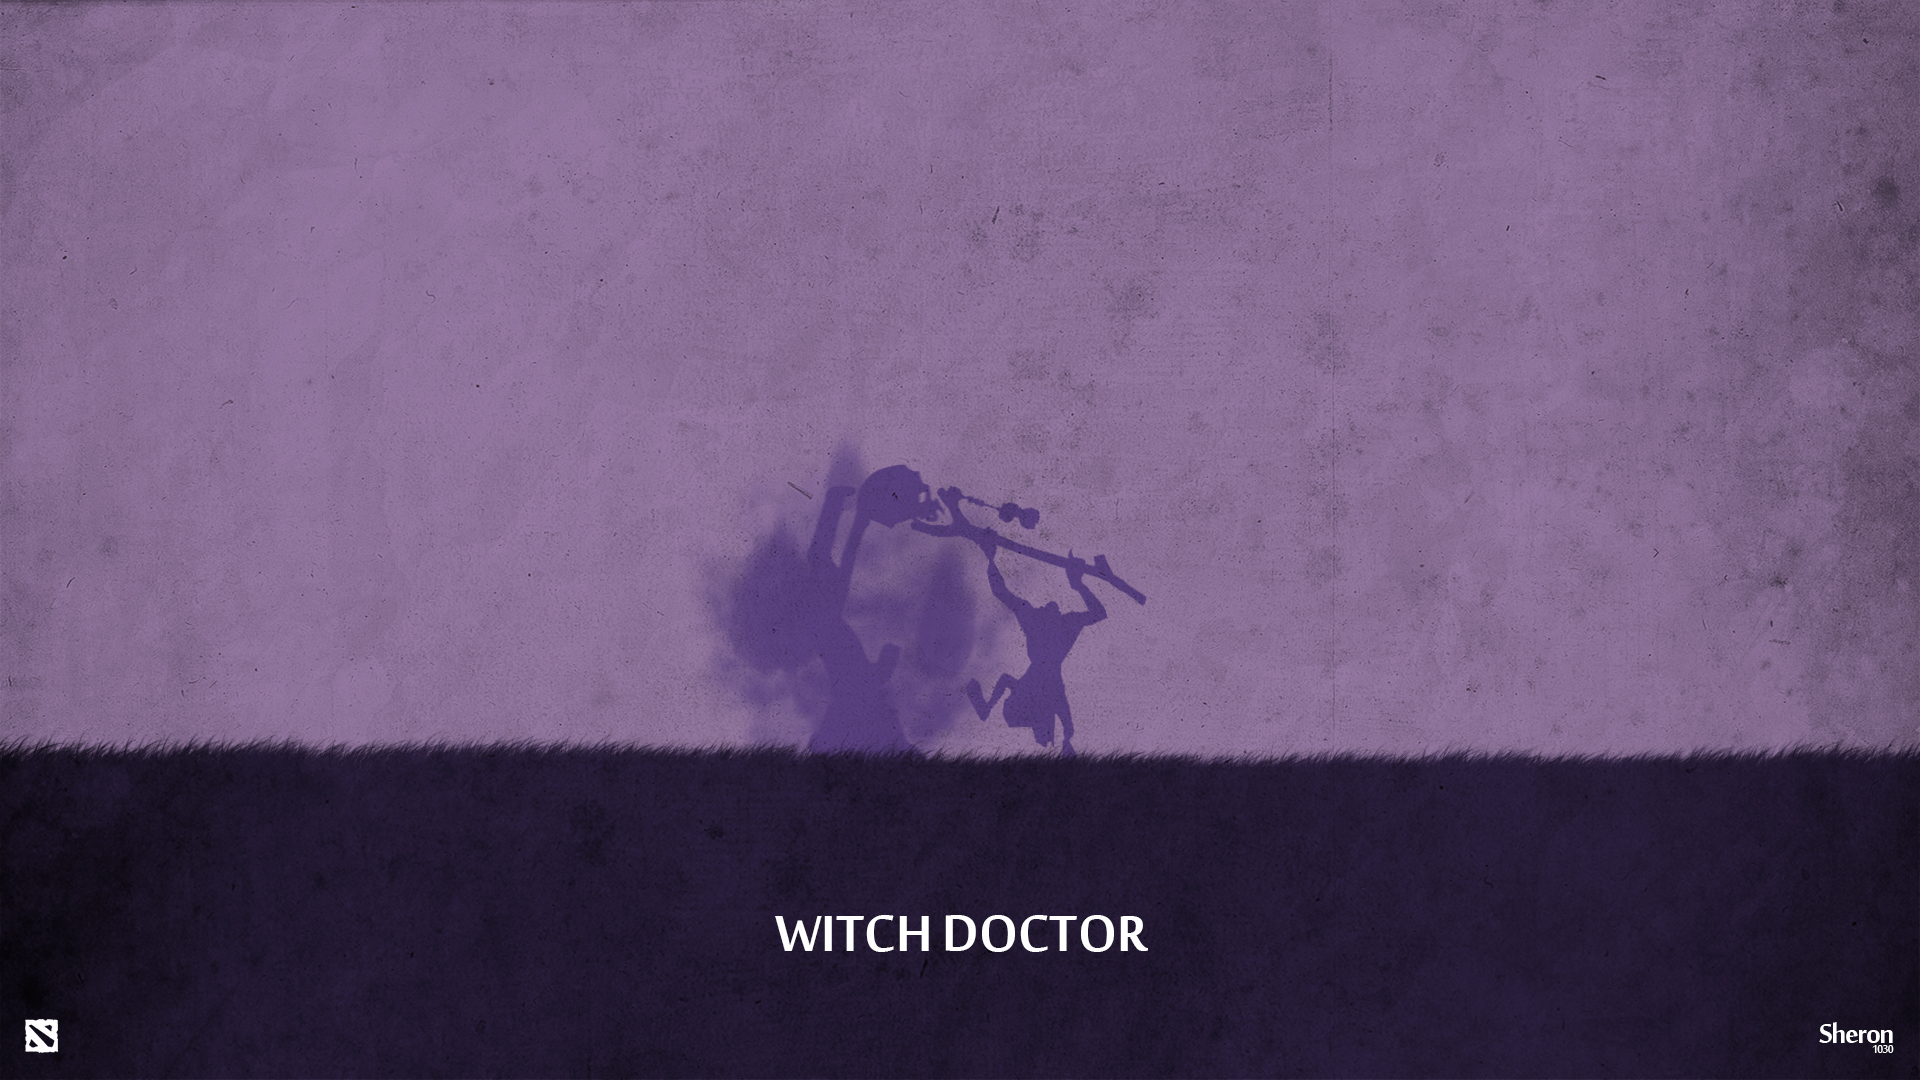 dota 2 witch doctor wallpaper by sheron1030 on deviantart